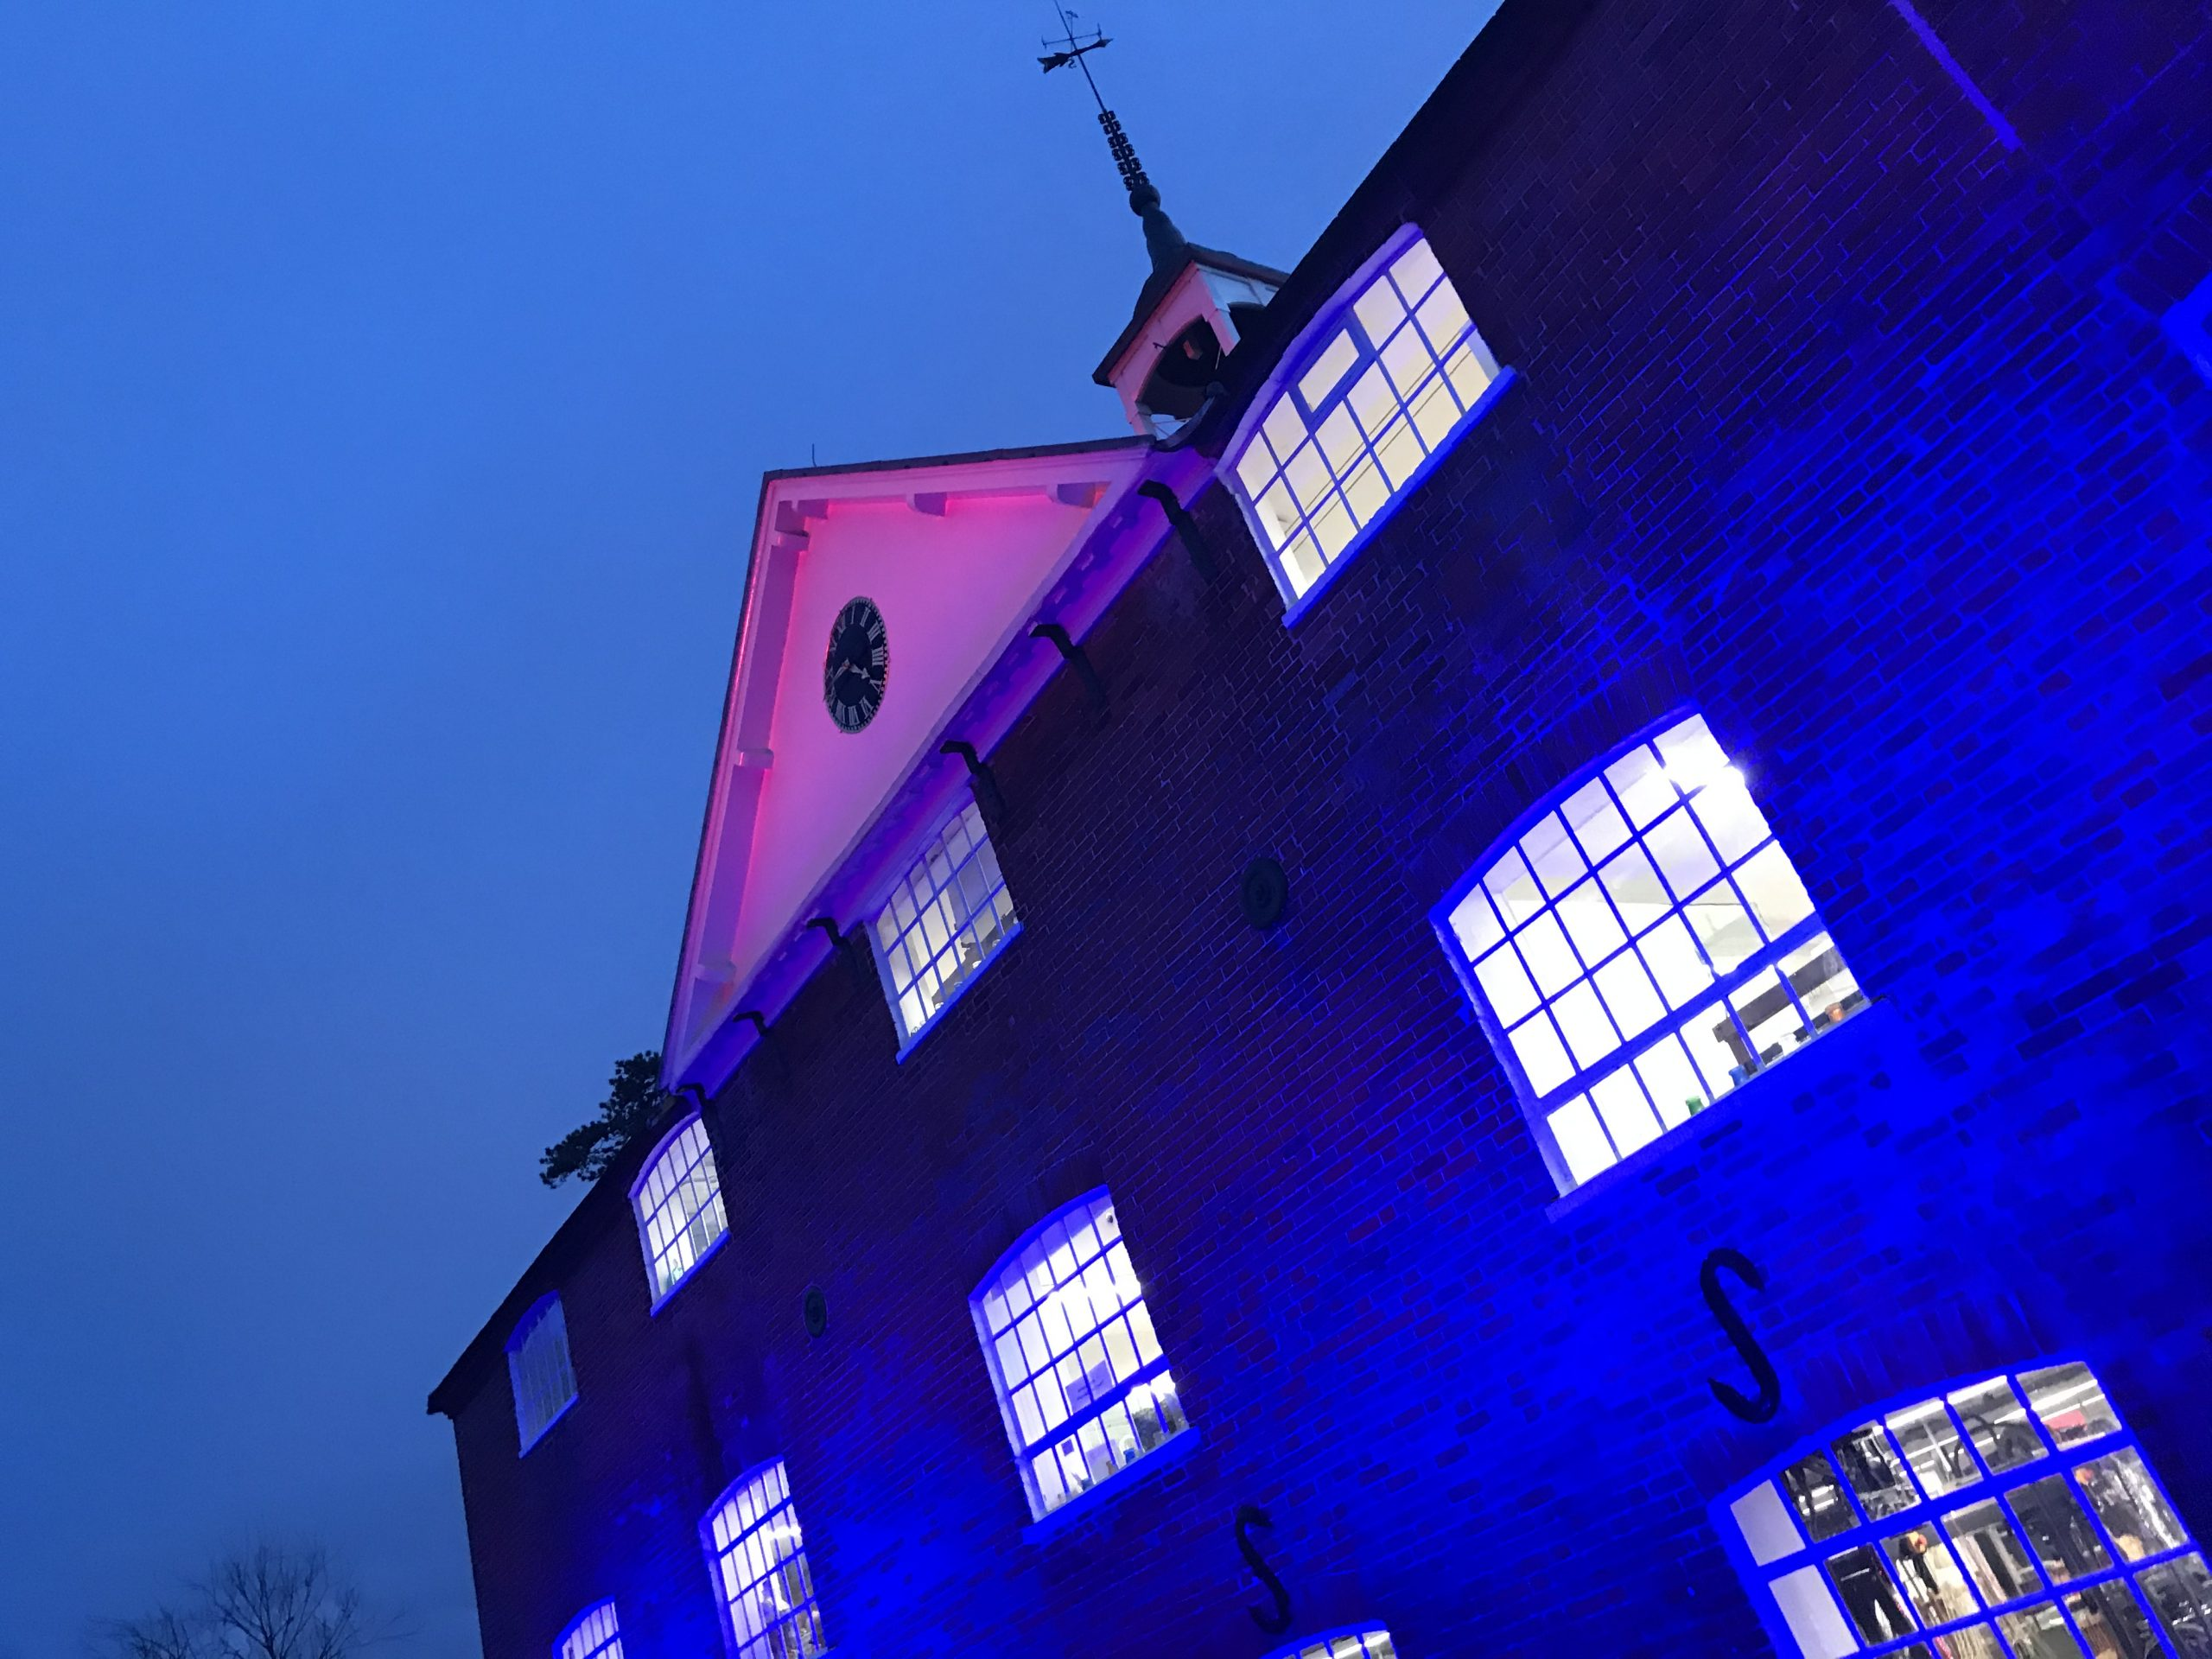 Testbourne Photography Students see the Mill in a New Light